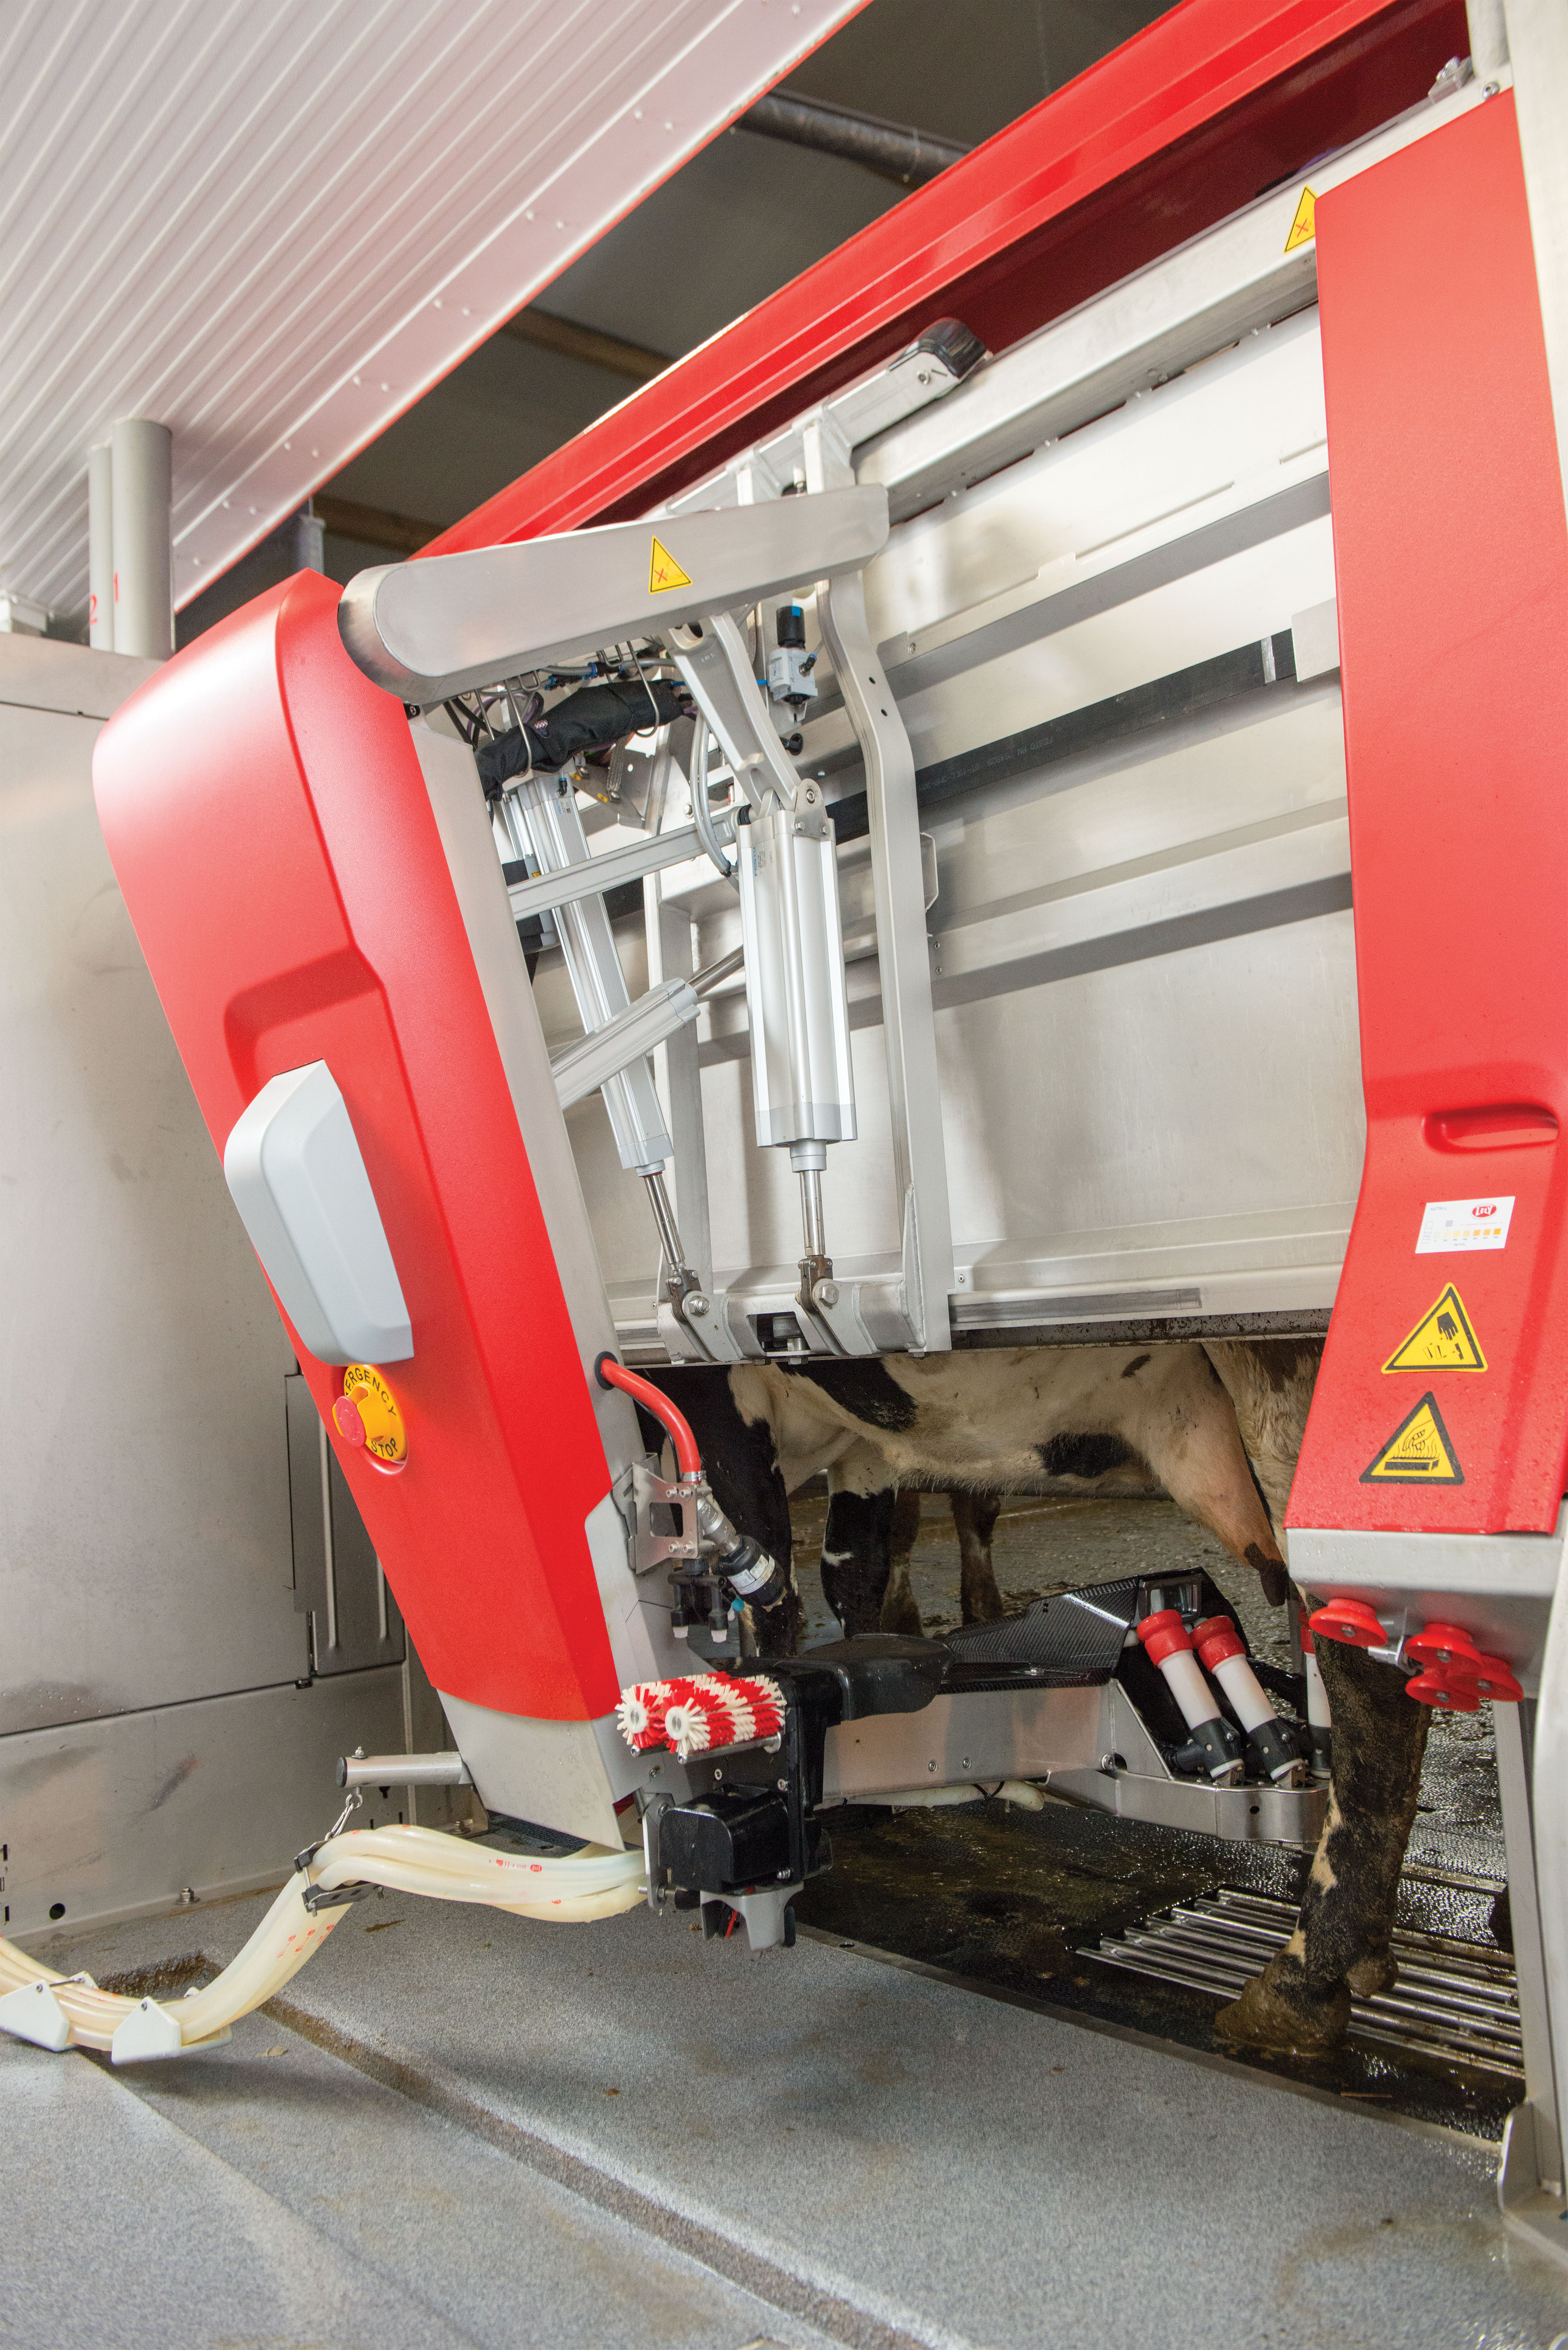 The Lely Astronaut A5 milking robot features an improved arm that is more energy efficient.